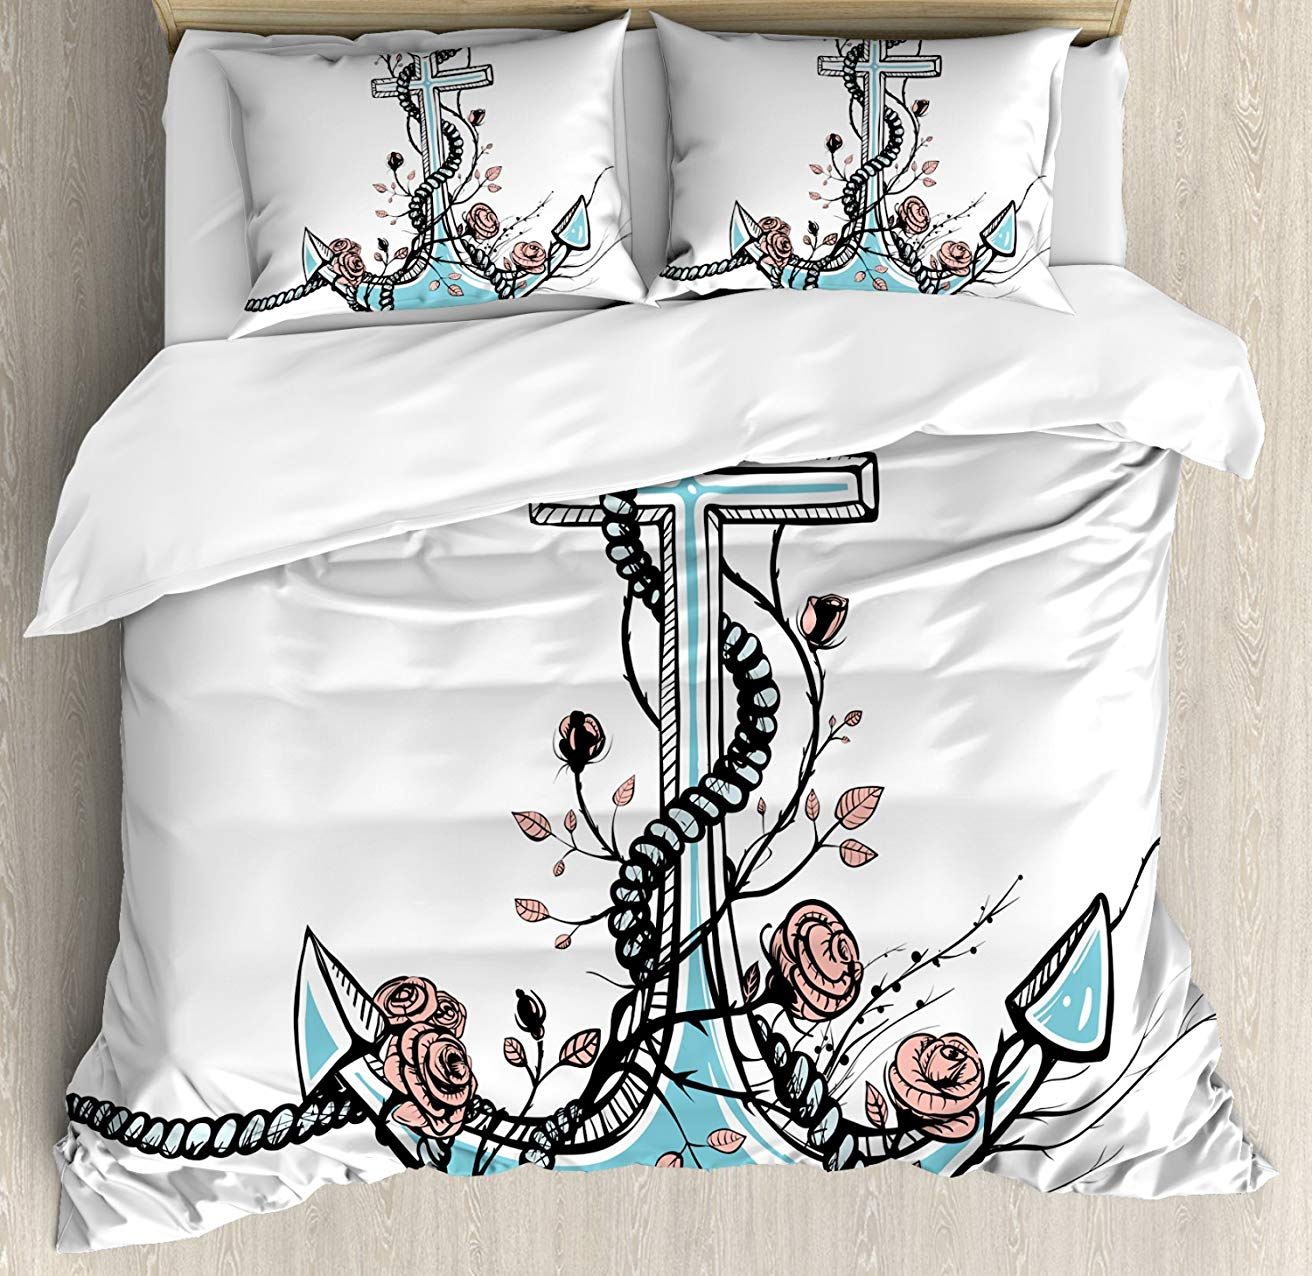 Anchor Duvet Cover Set Romantic Boho Design Sketch of an Old Anchor with Roses Black Ink Style, Decorative 3 Piece Bedding SetAnchor Duvet Cover Set Romantic Boho Design Sketch of an Old Anchor with Roses Black Ink Style, Decorative 3 Piece Bedding Set